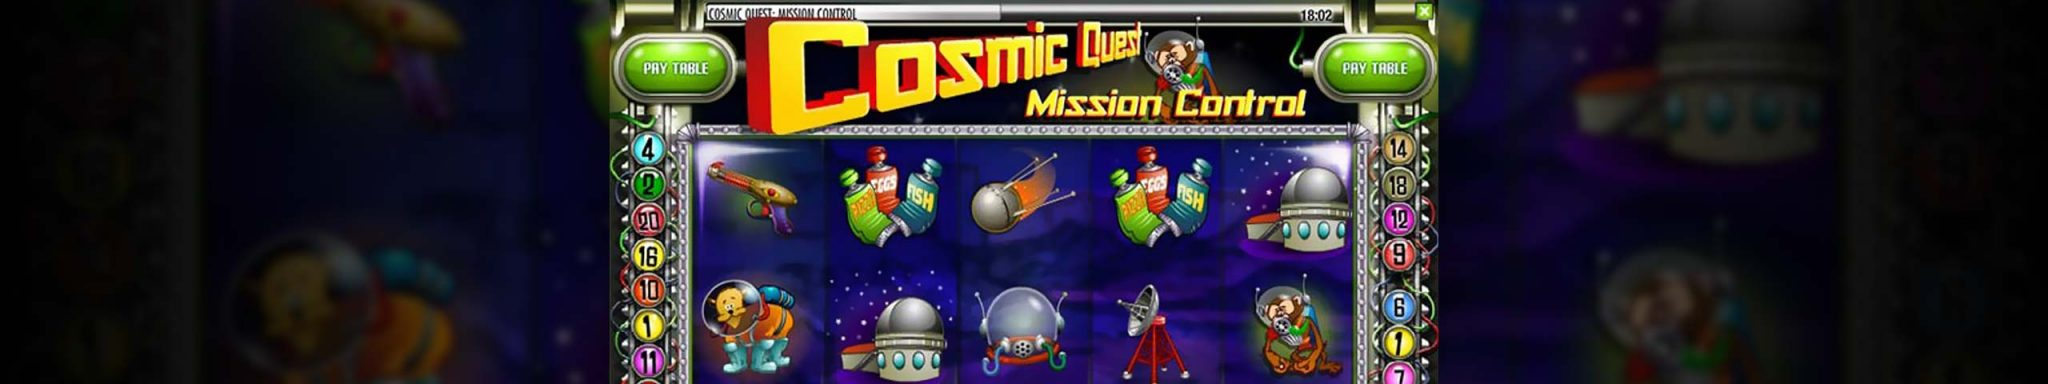 Cosmic Quest: Mission Control